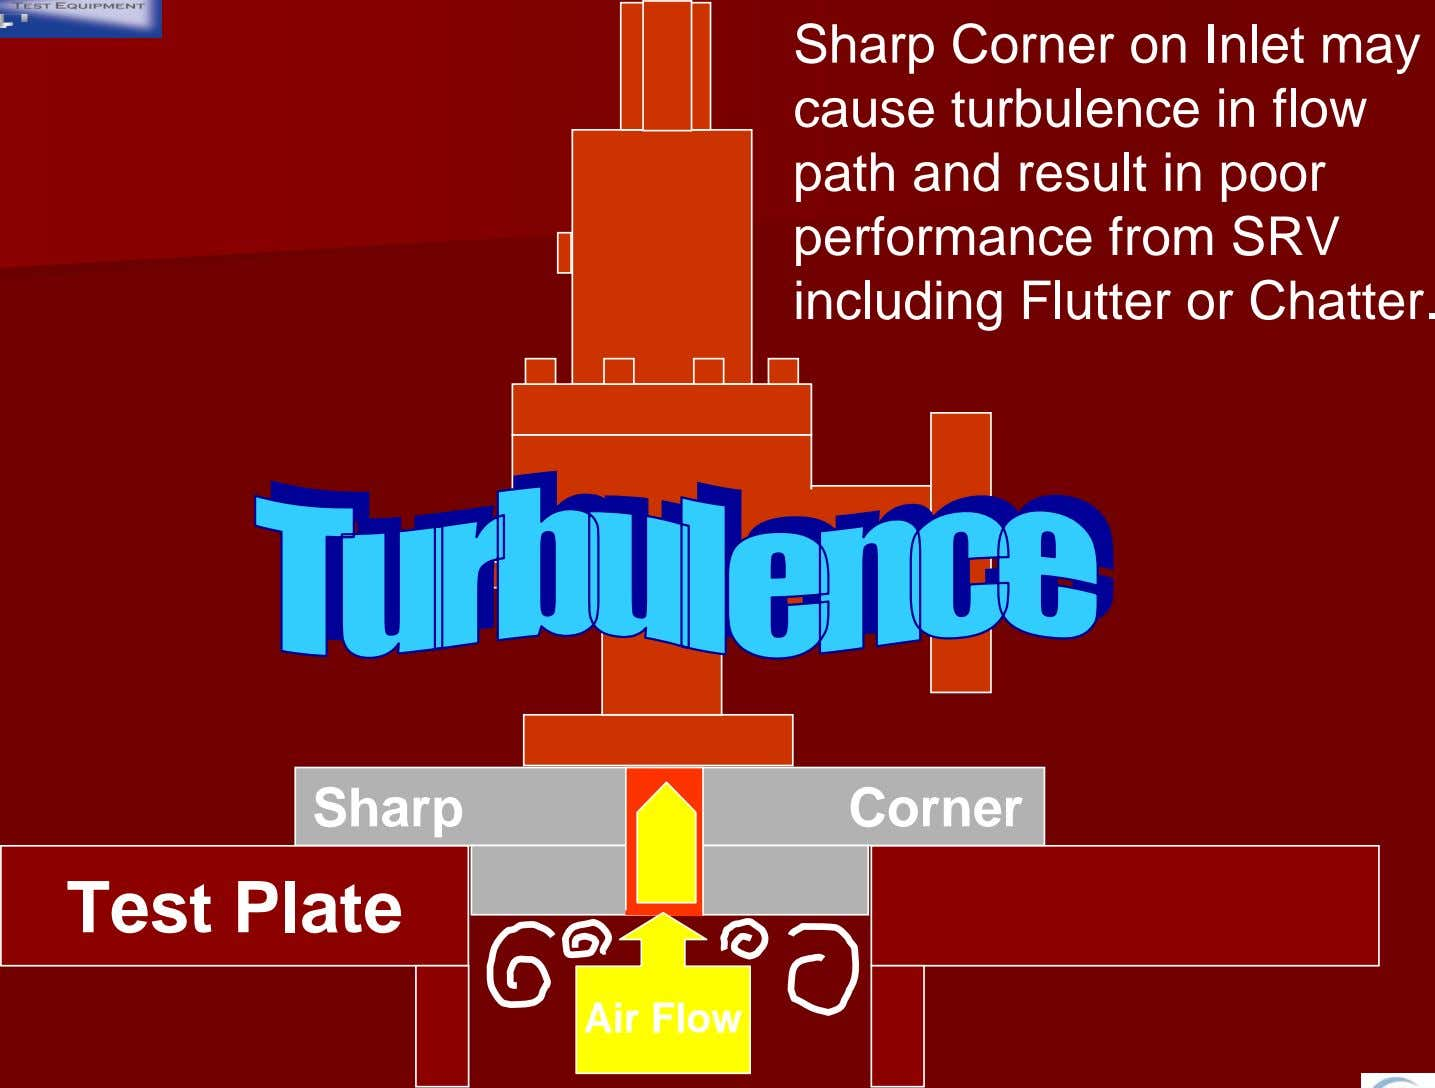 Sharp Corner on Inlet may cause turbulence in flow path and result in poor performance